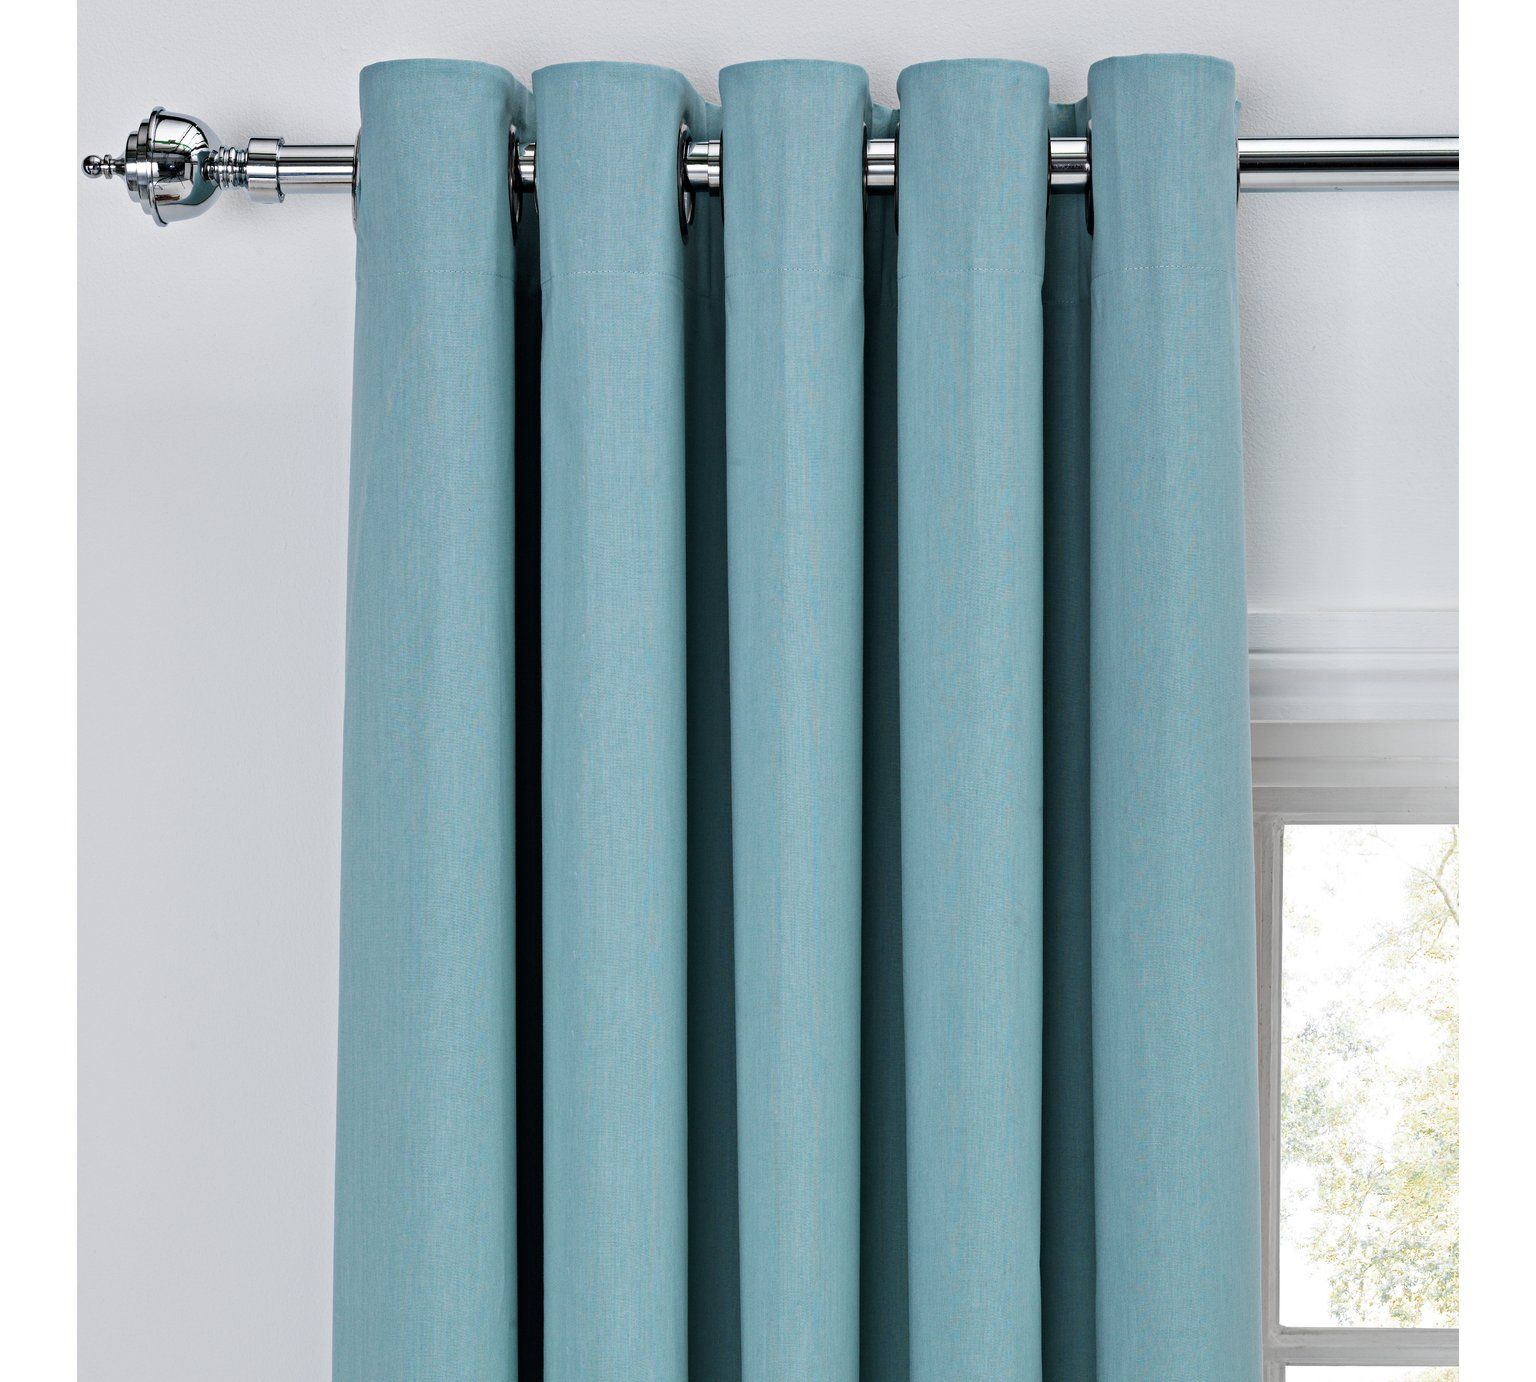 Buy ColourMatch Thermal Blackout Curtains - 117x137cm - Duck Egg at ...